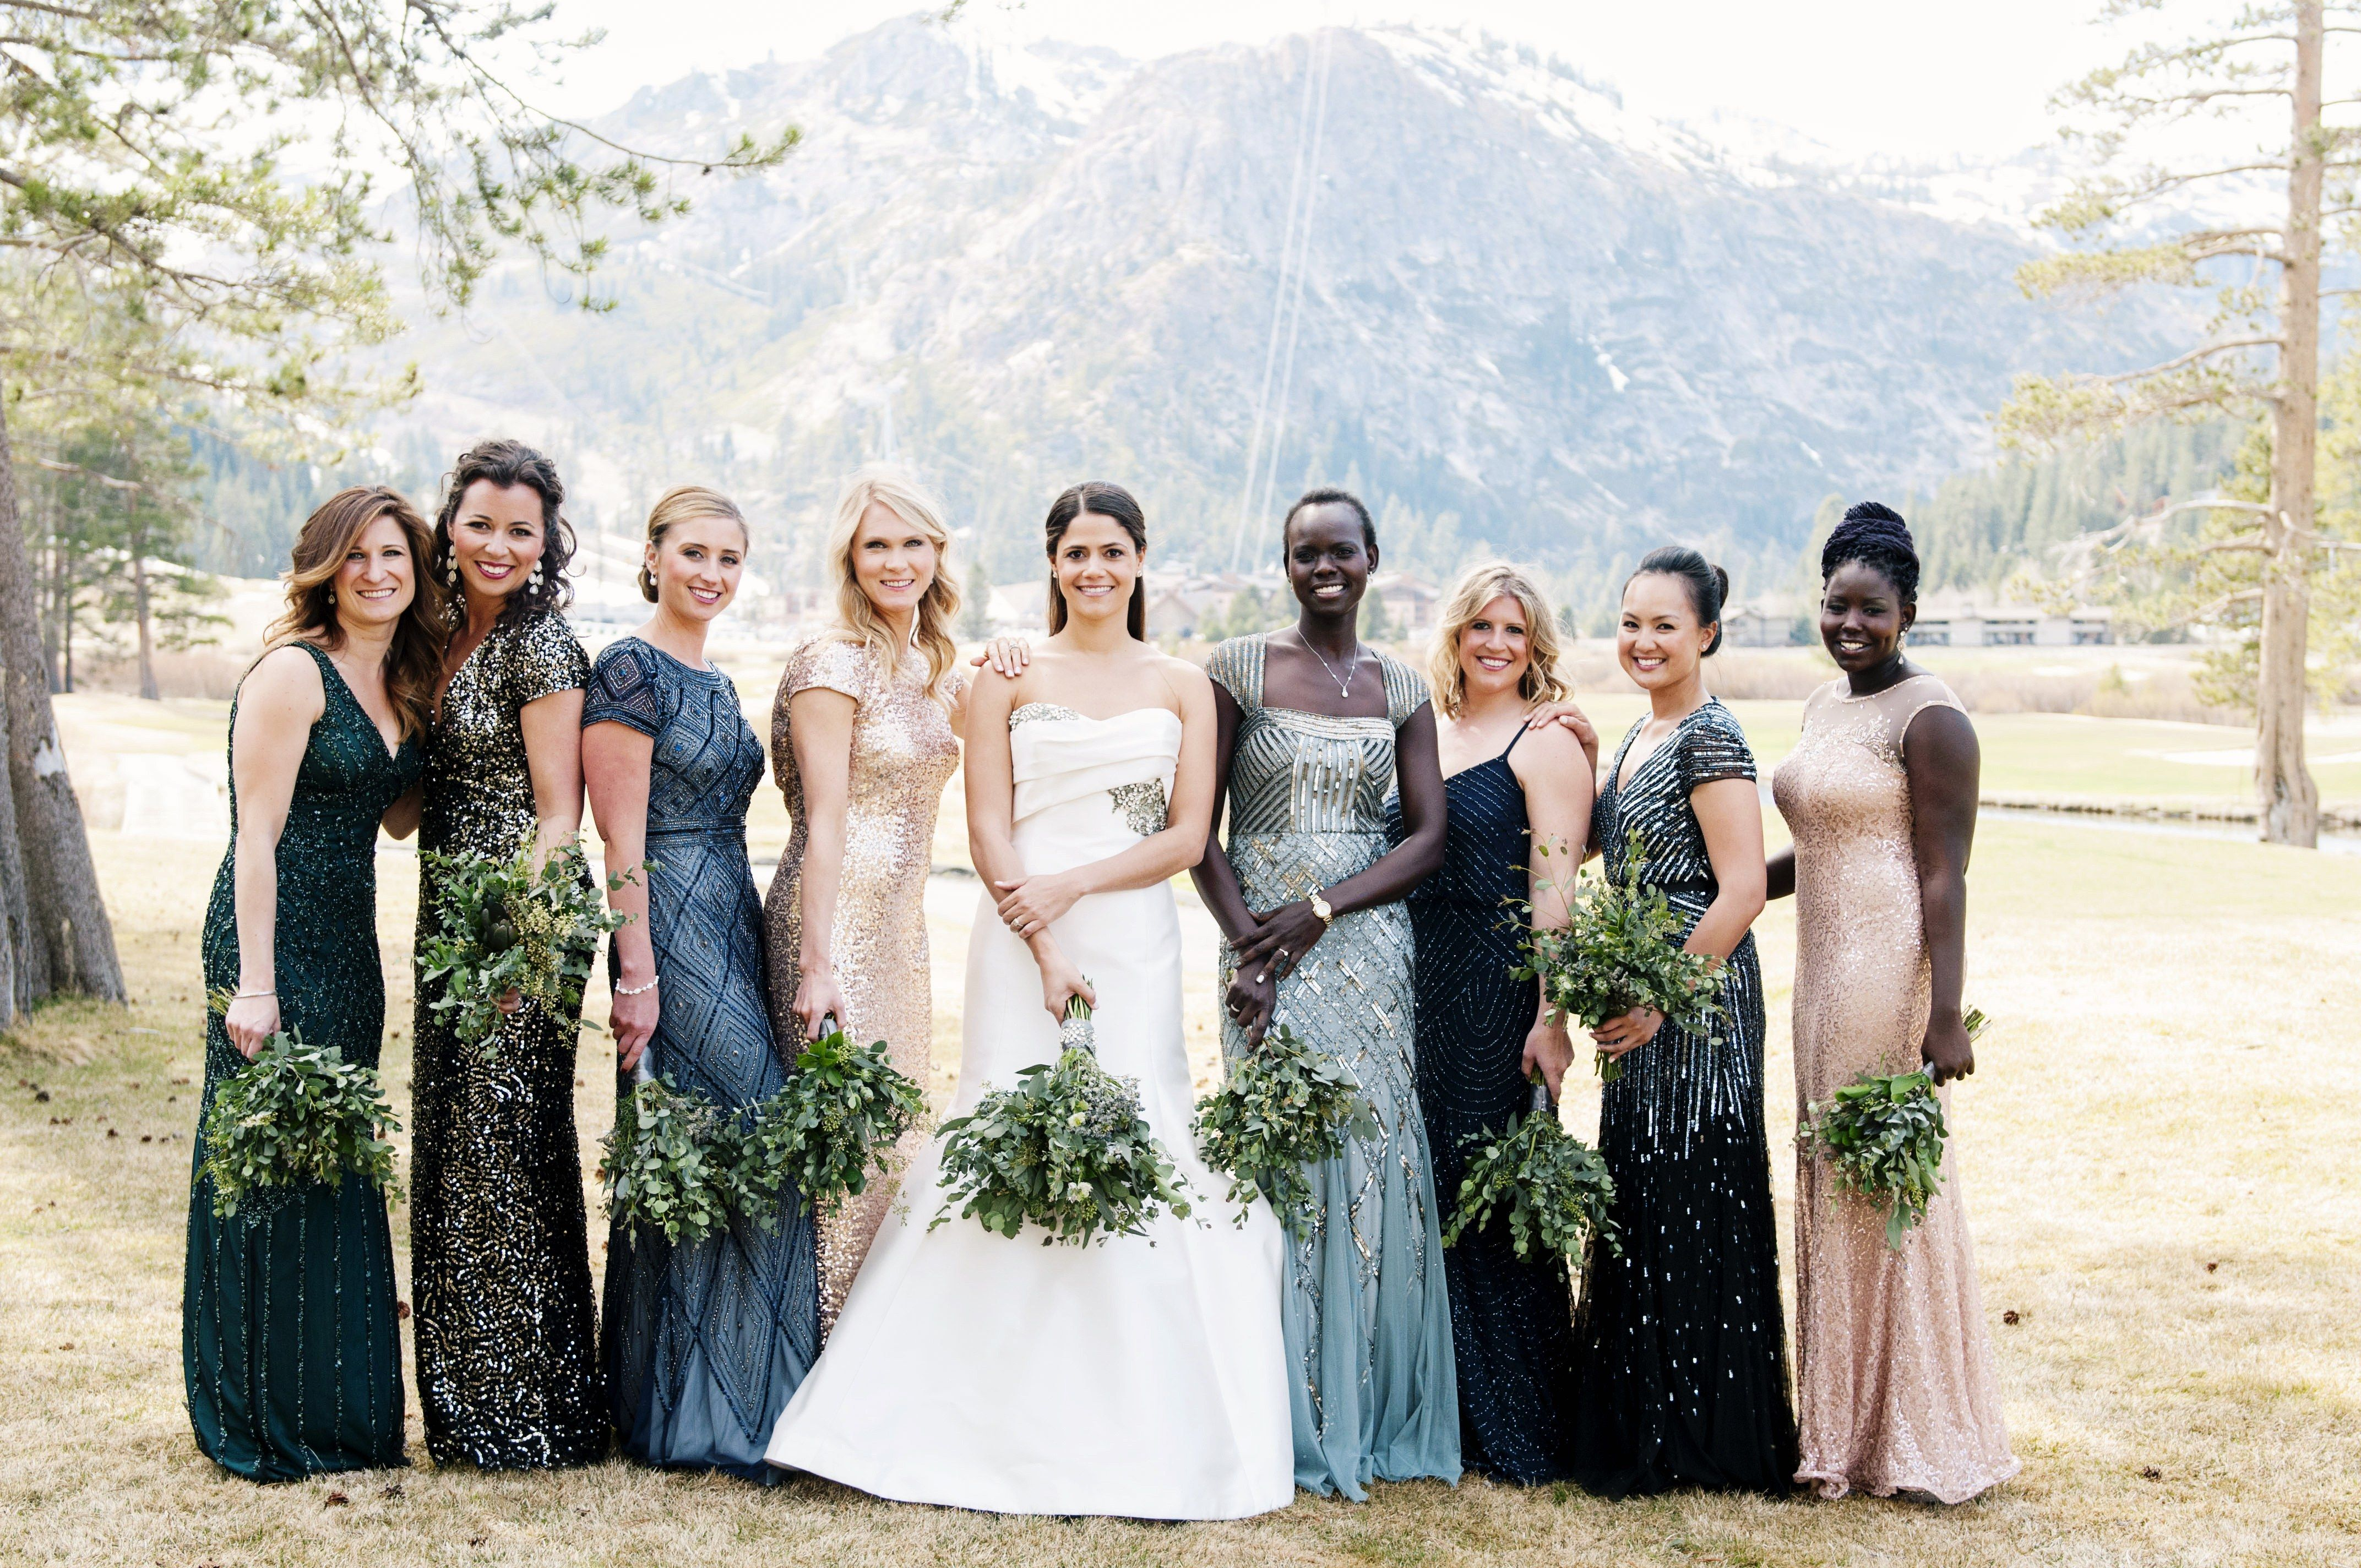 Mismatched Bridesmaid Dresses 10 Tips To Pull It Off Beautifully Different Bridesmaid Dresses Mismatched Bridesmaids Unique Bridesmaid Dresses